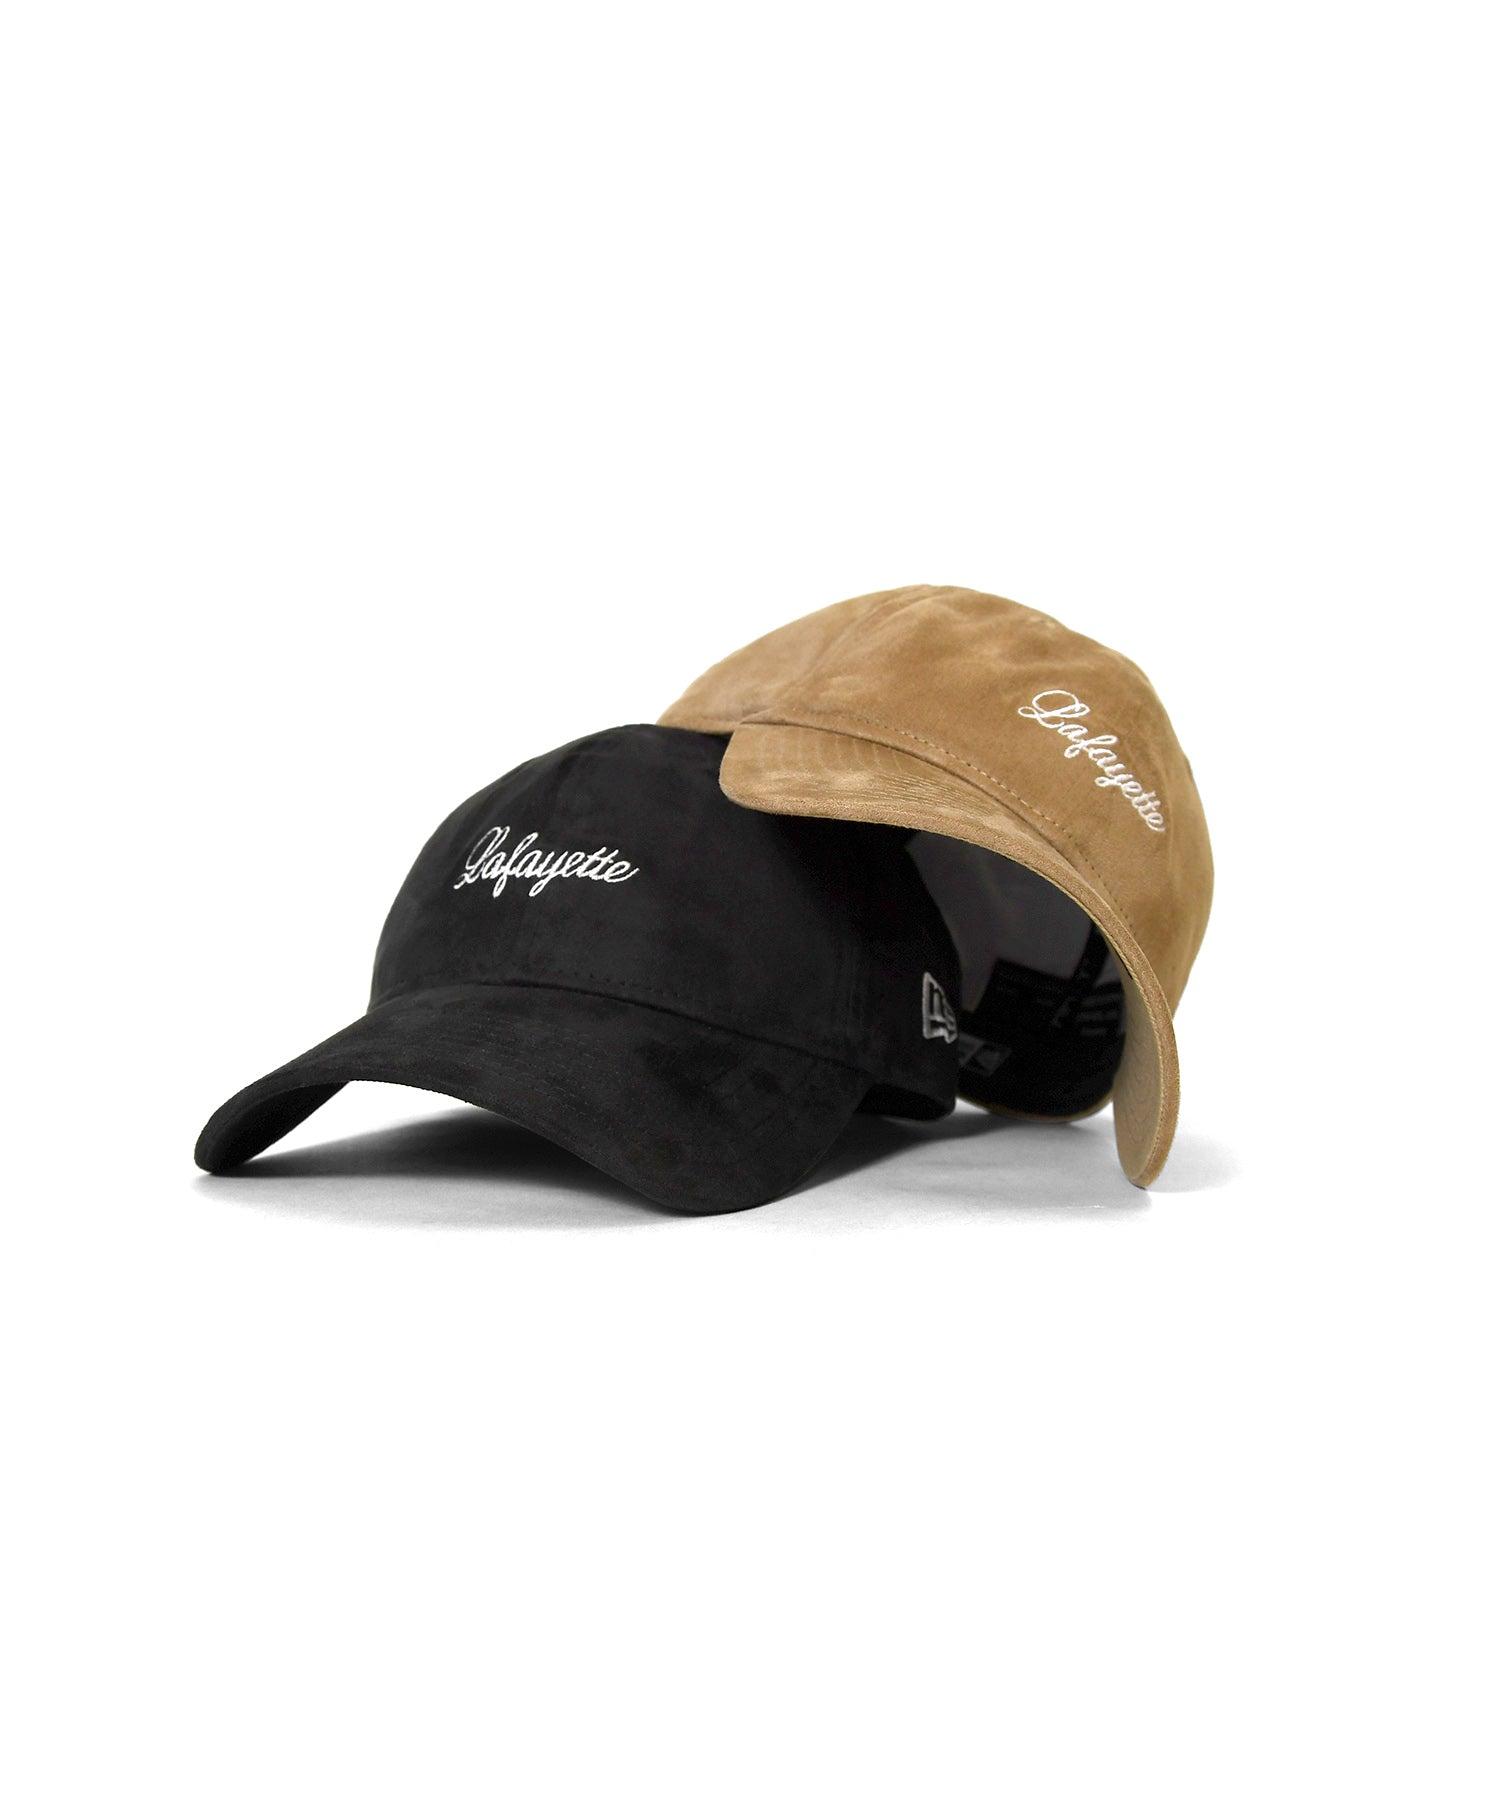 LFYT x NEW ERA SCRIPT LOGO SYNTHTIC SUEDE 9THIRTY CAP BLACK LA201407